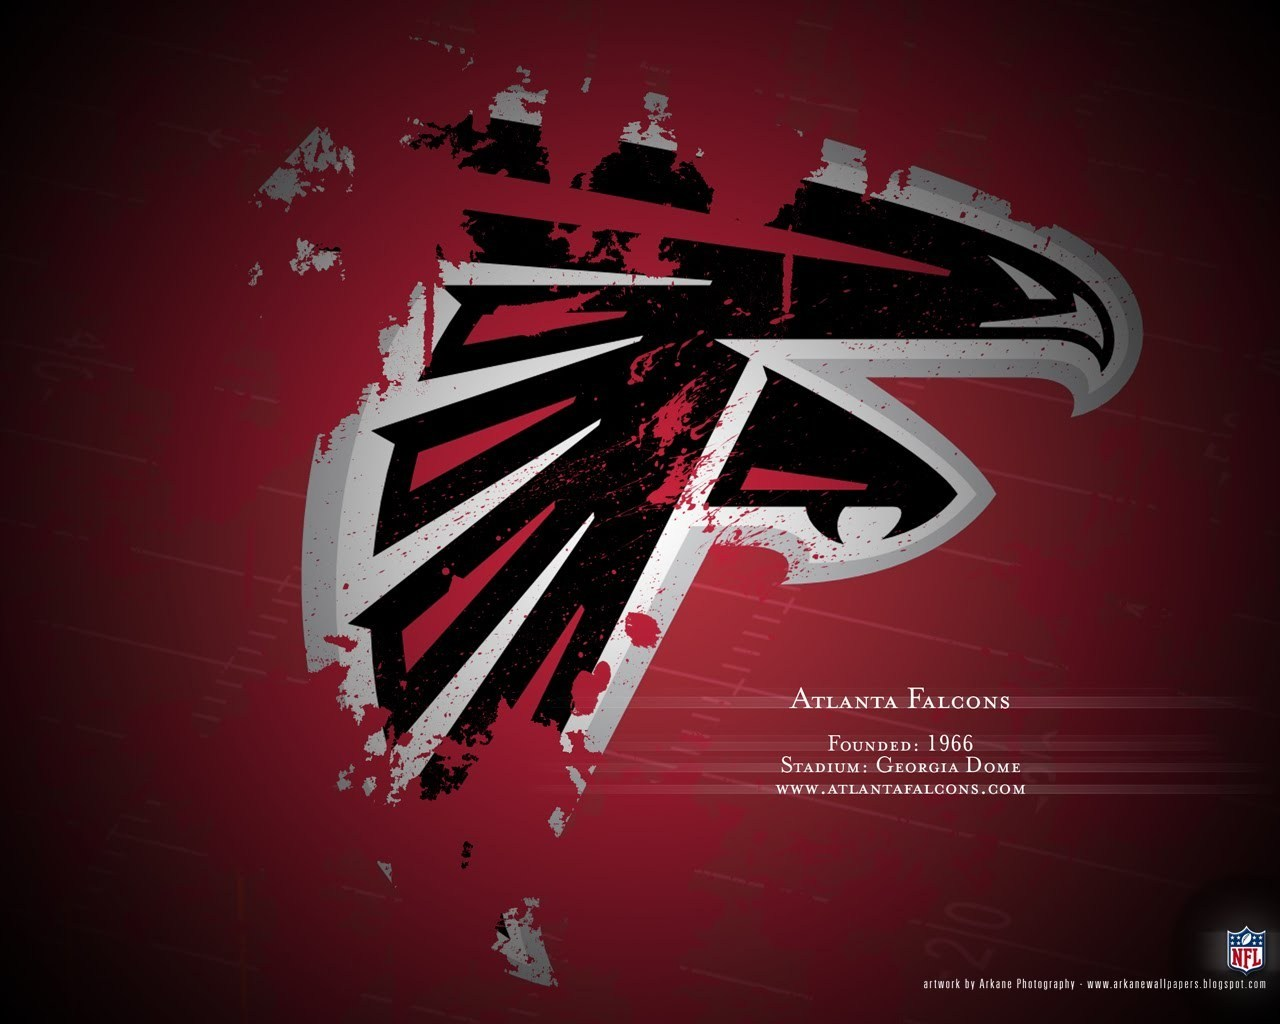 ATLANTA FALCONS - ATLANTA FALCONS Wallpaper (9173283) - Fanpop